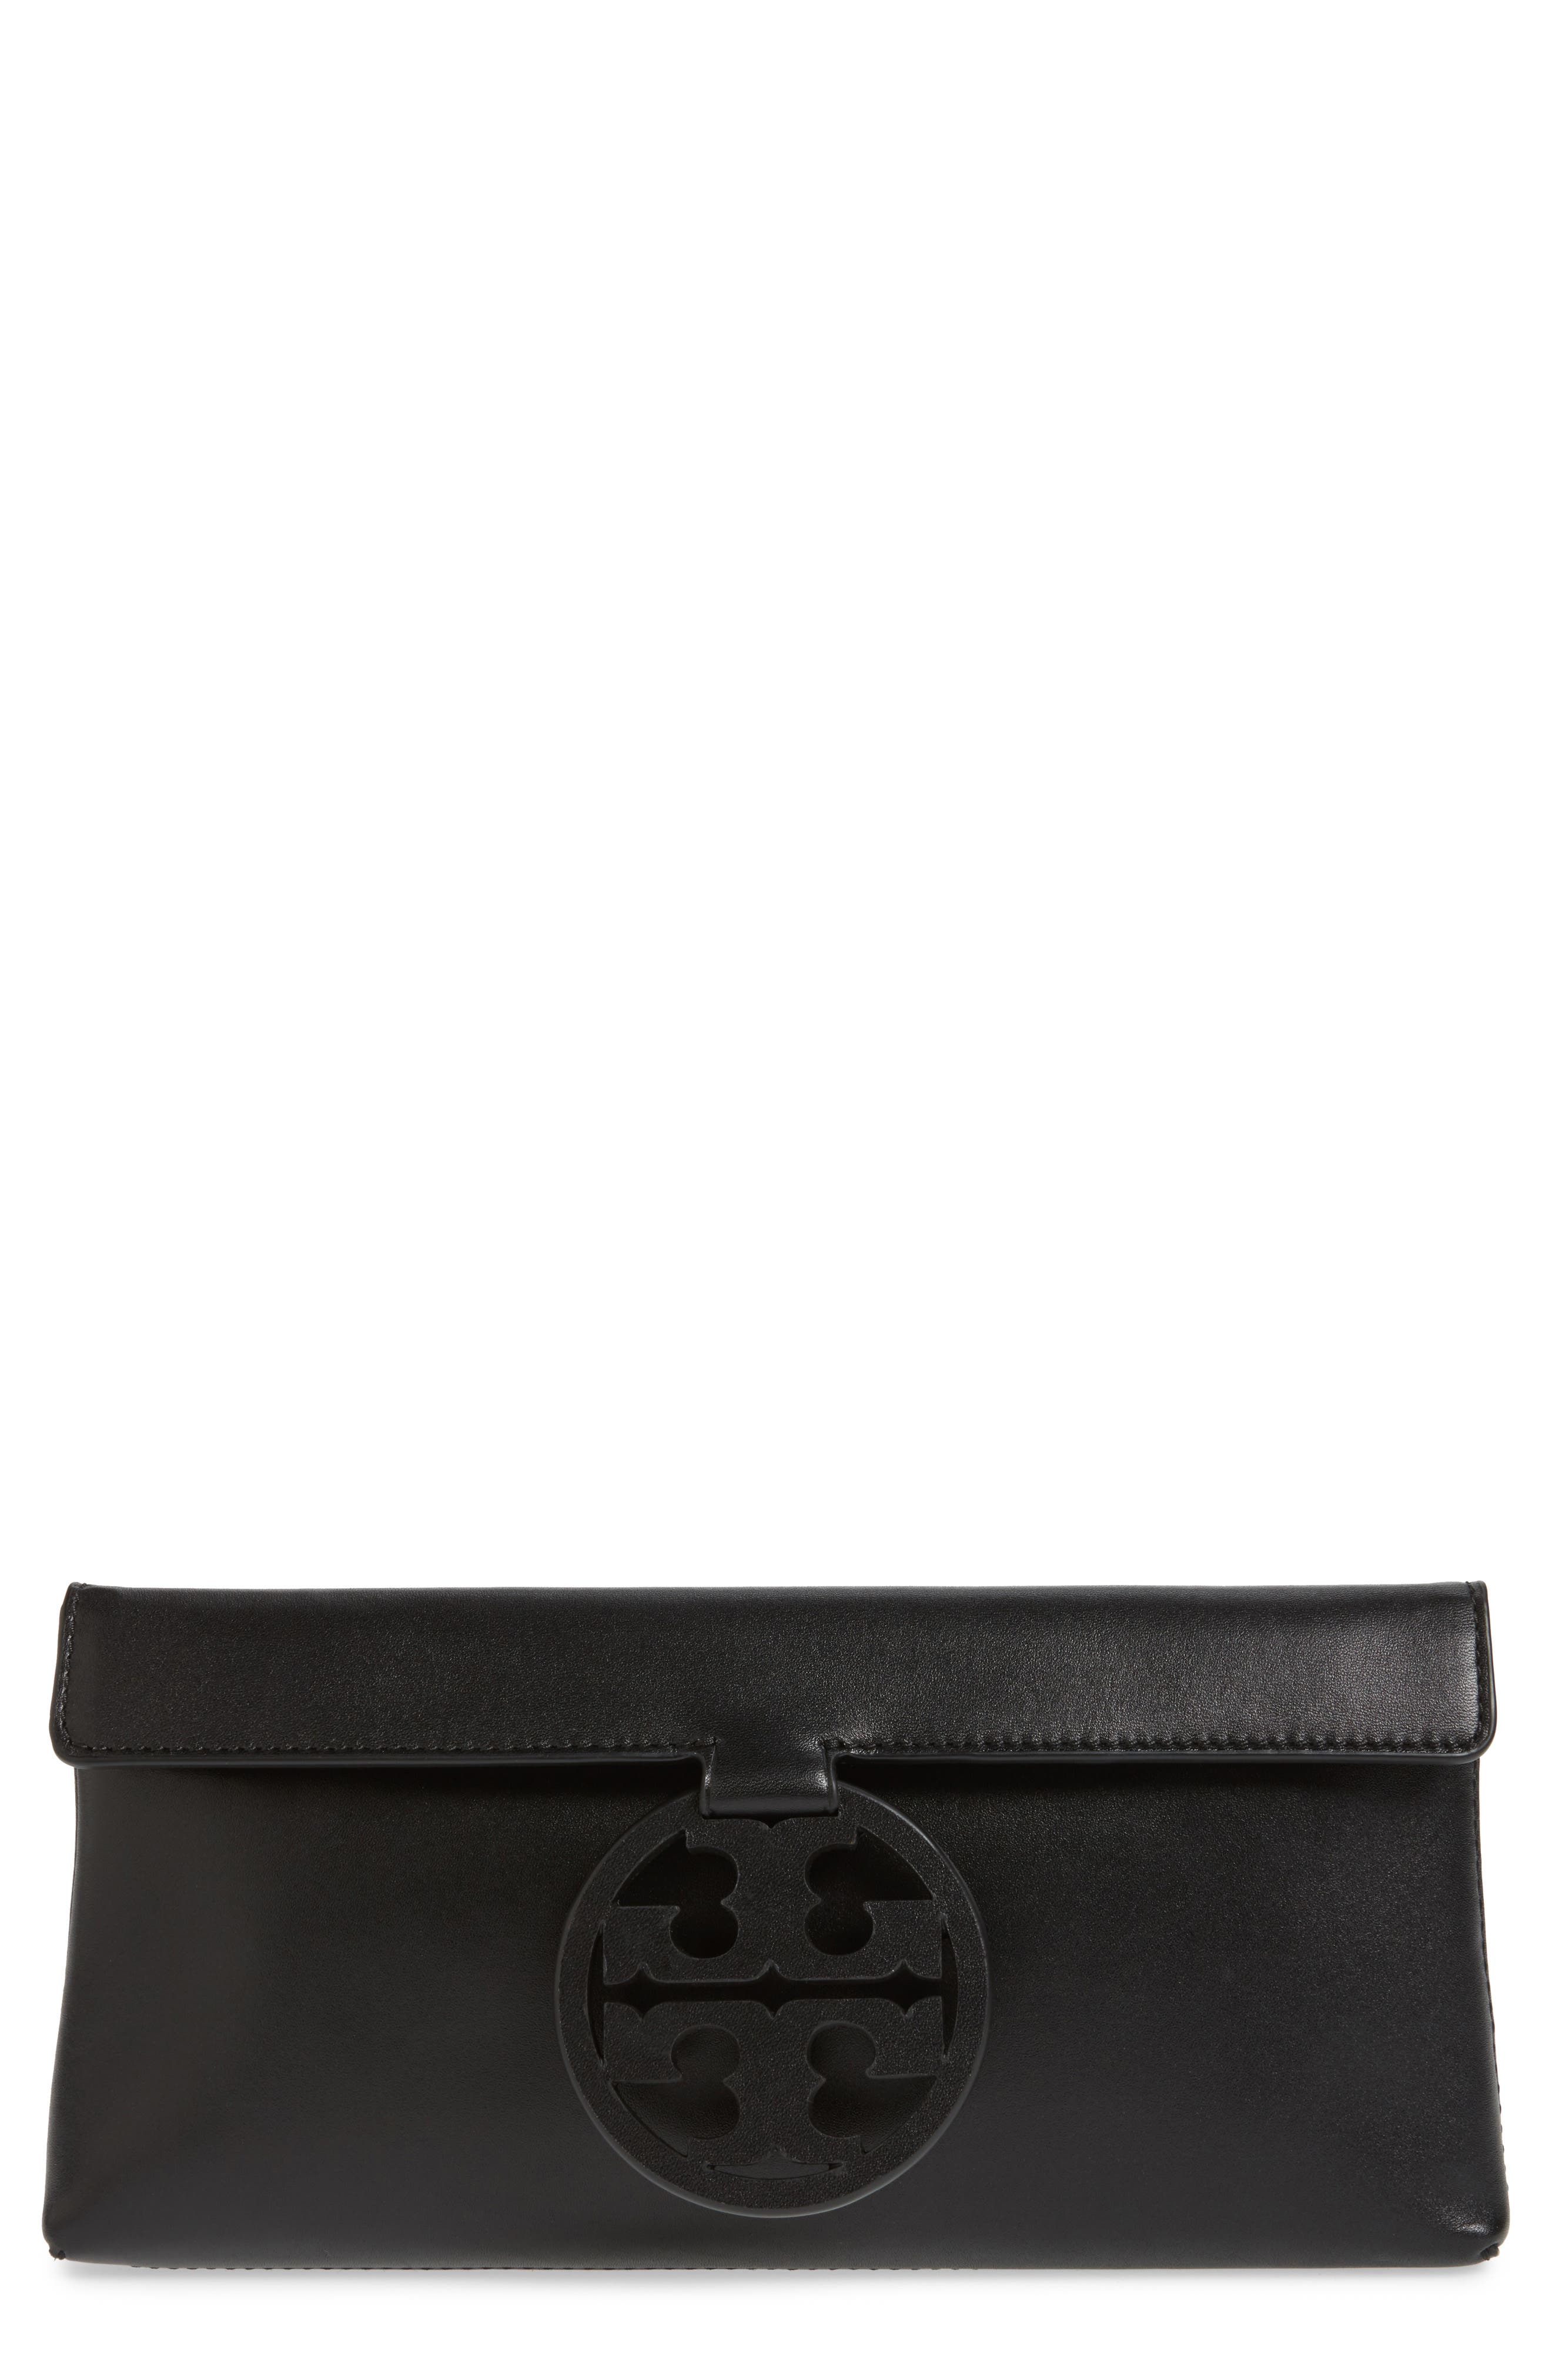 TORY BURCH, Miller Leather Clutch, Main thumbnail 1, color, BLACK